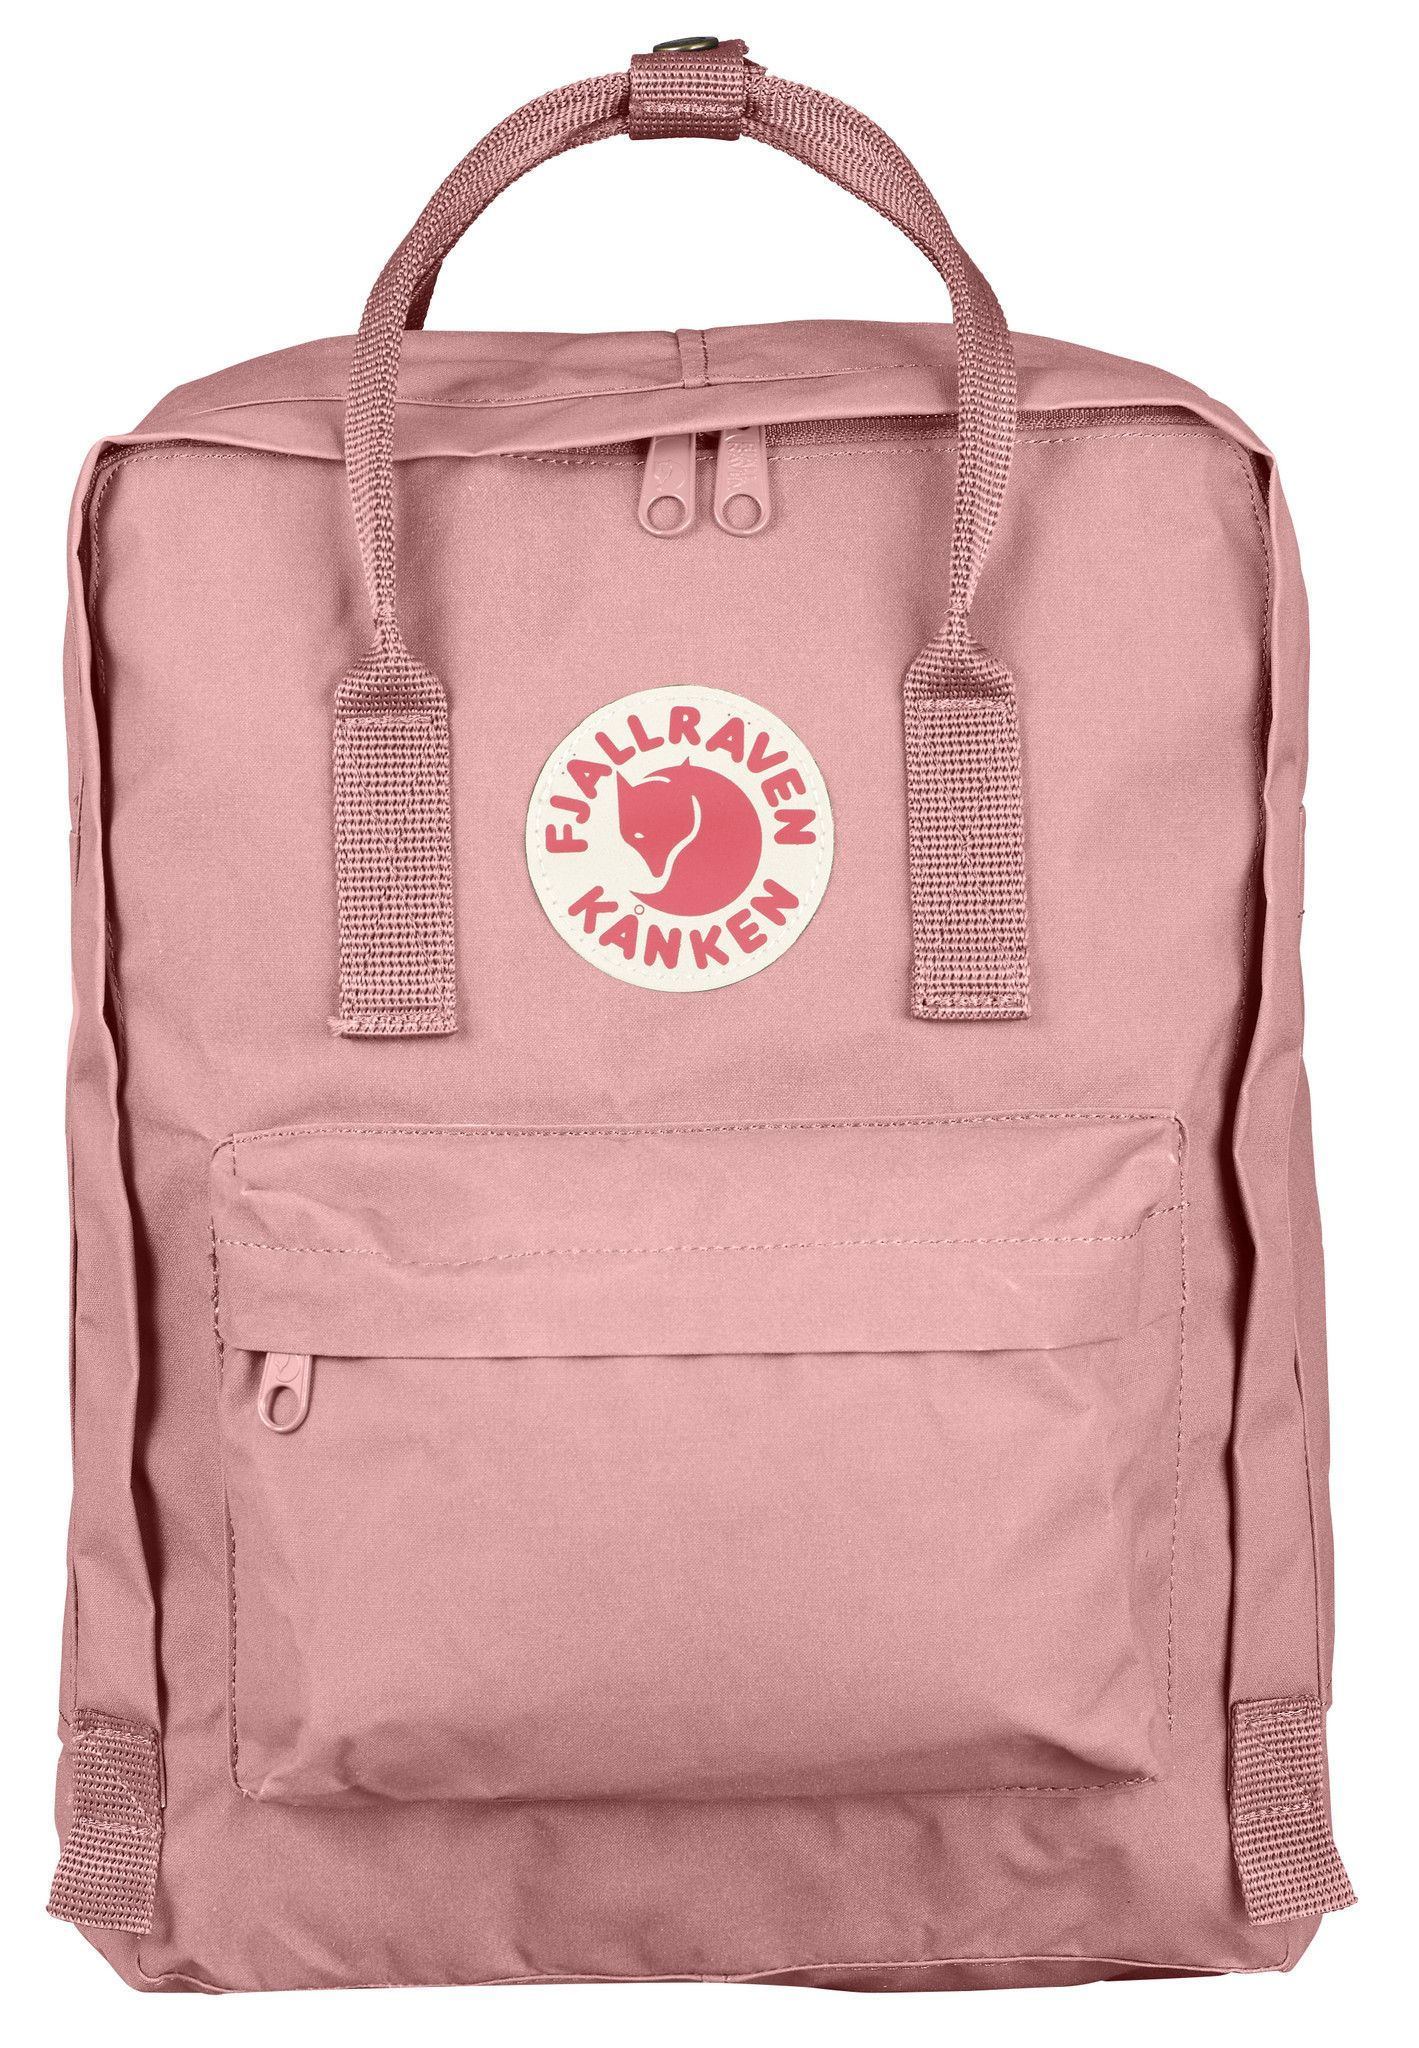 fjallraven kanken classic backpack cheap